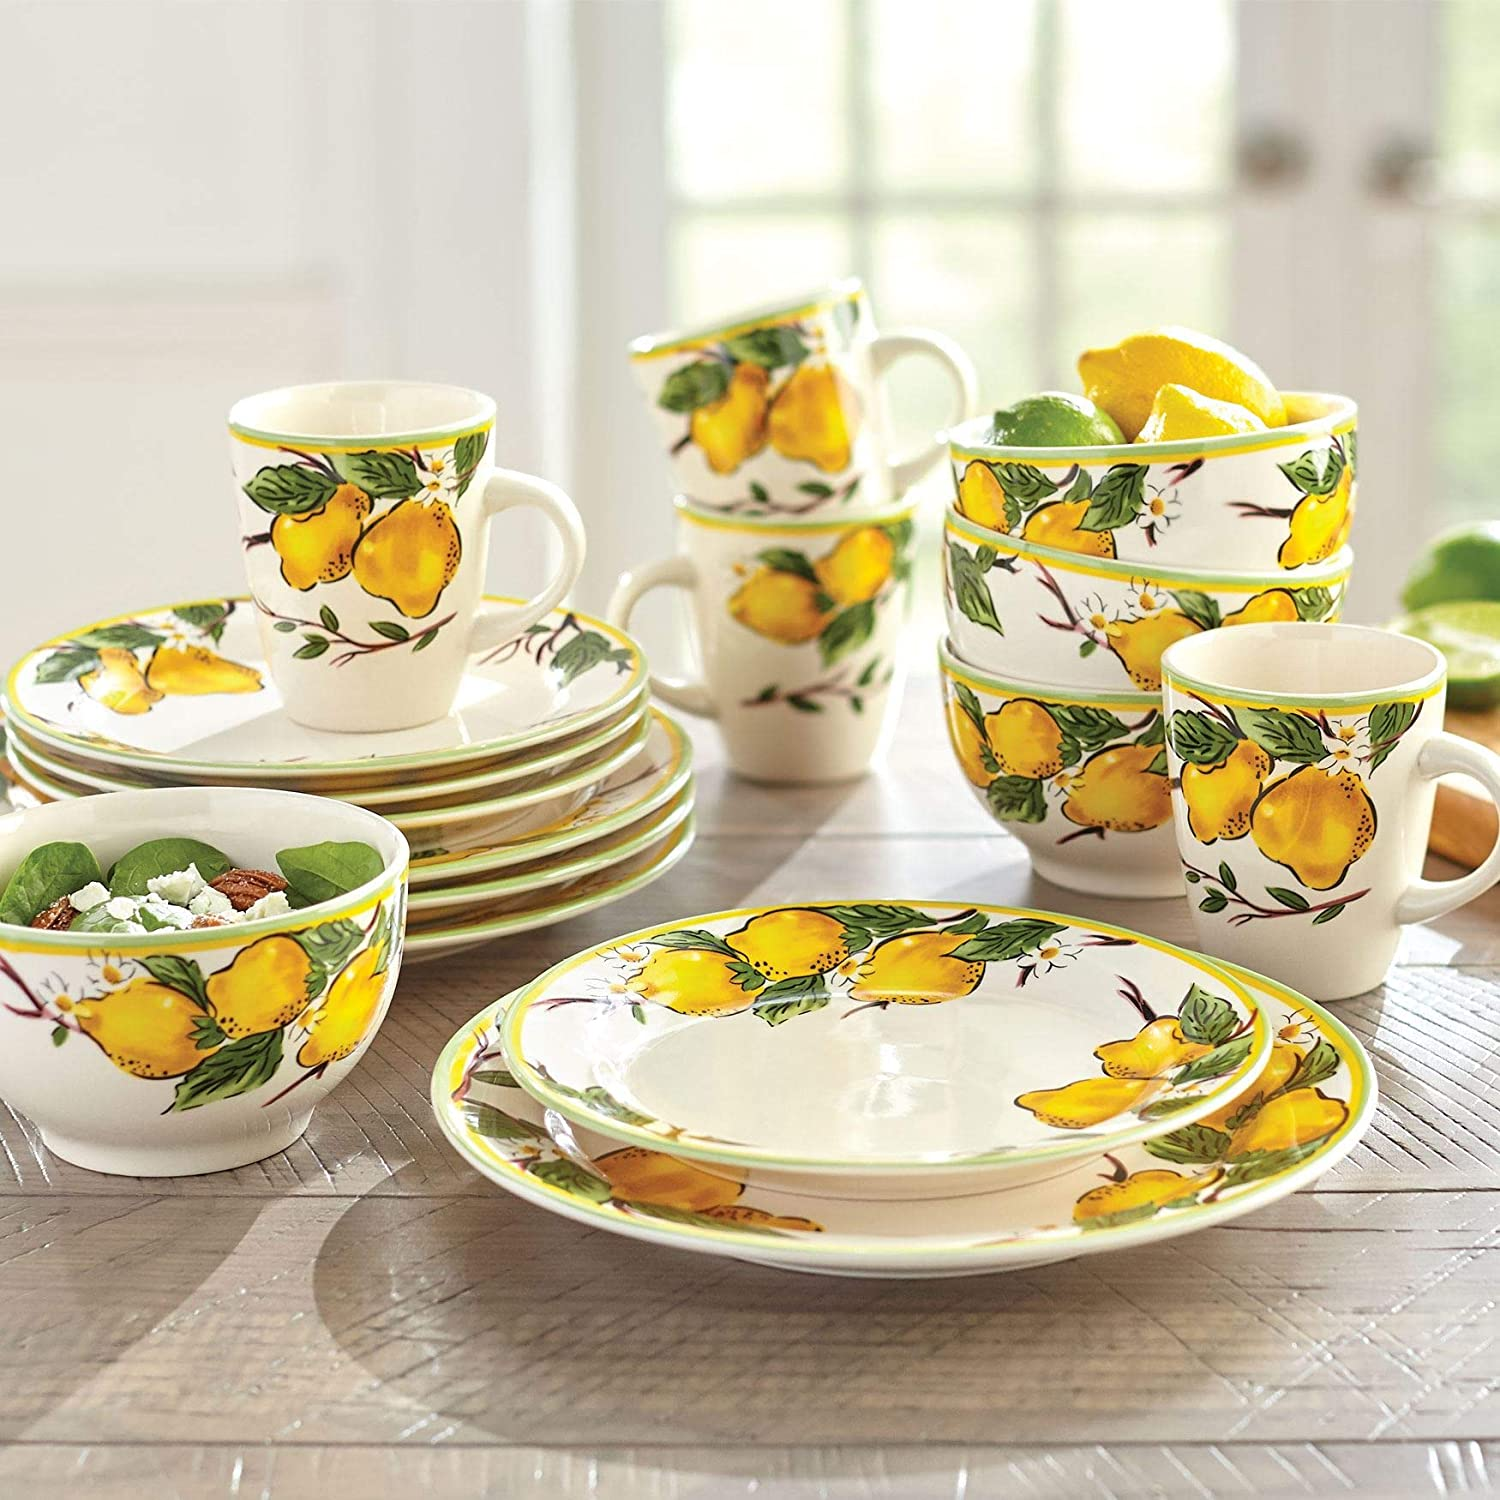 Brylanehome 16-Pc. Lemon Dinnerware Set